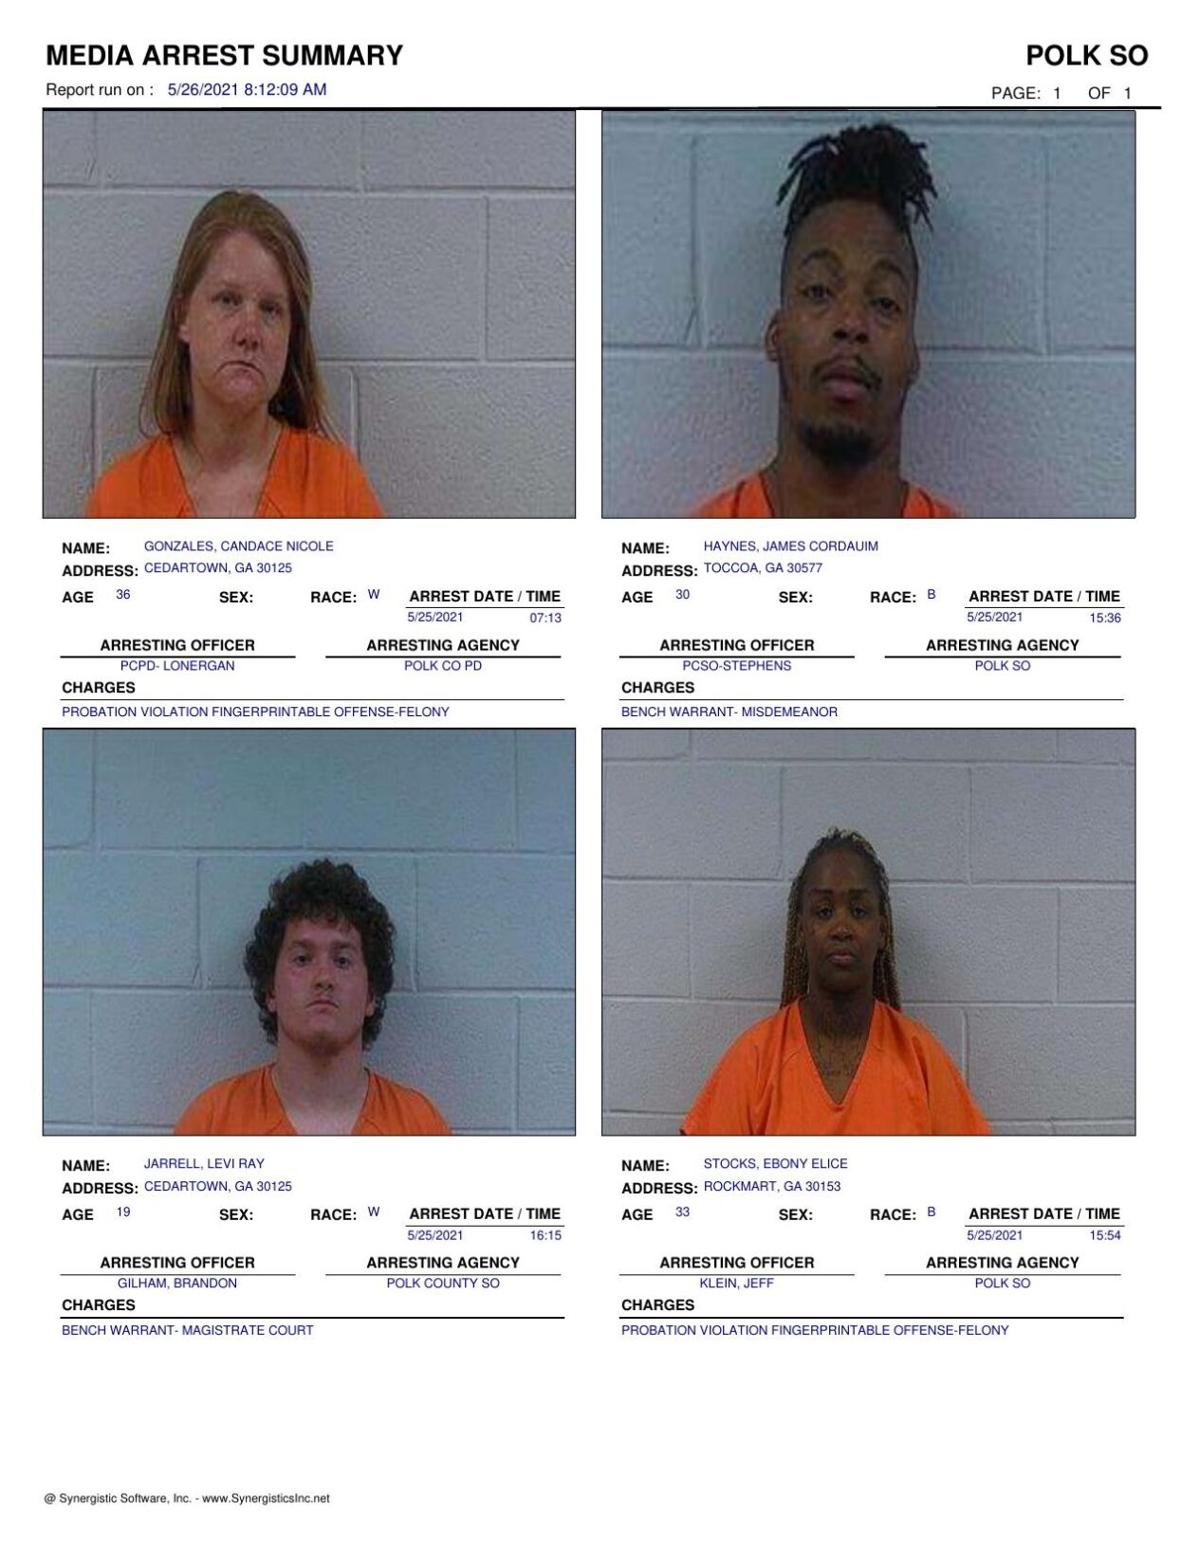 Polk County Jail Report for Wednesday, May 26